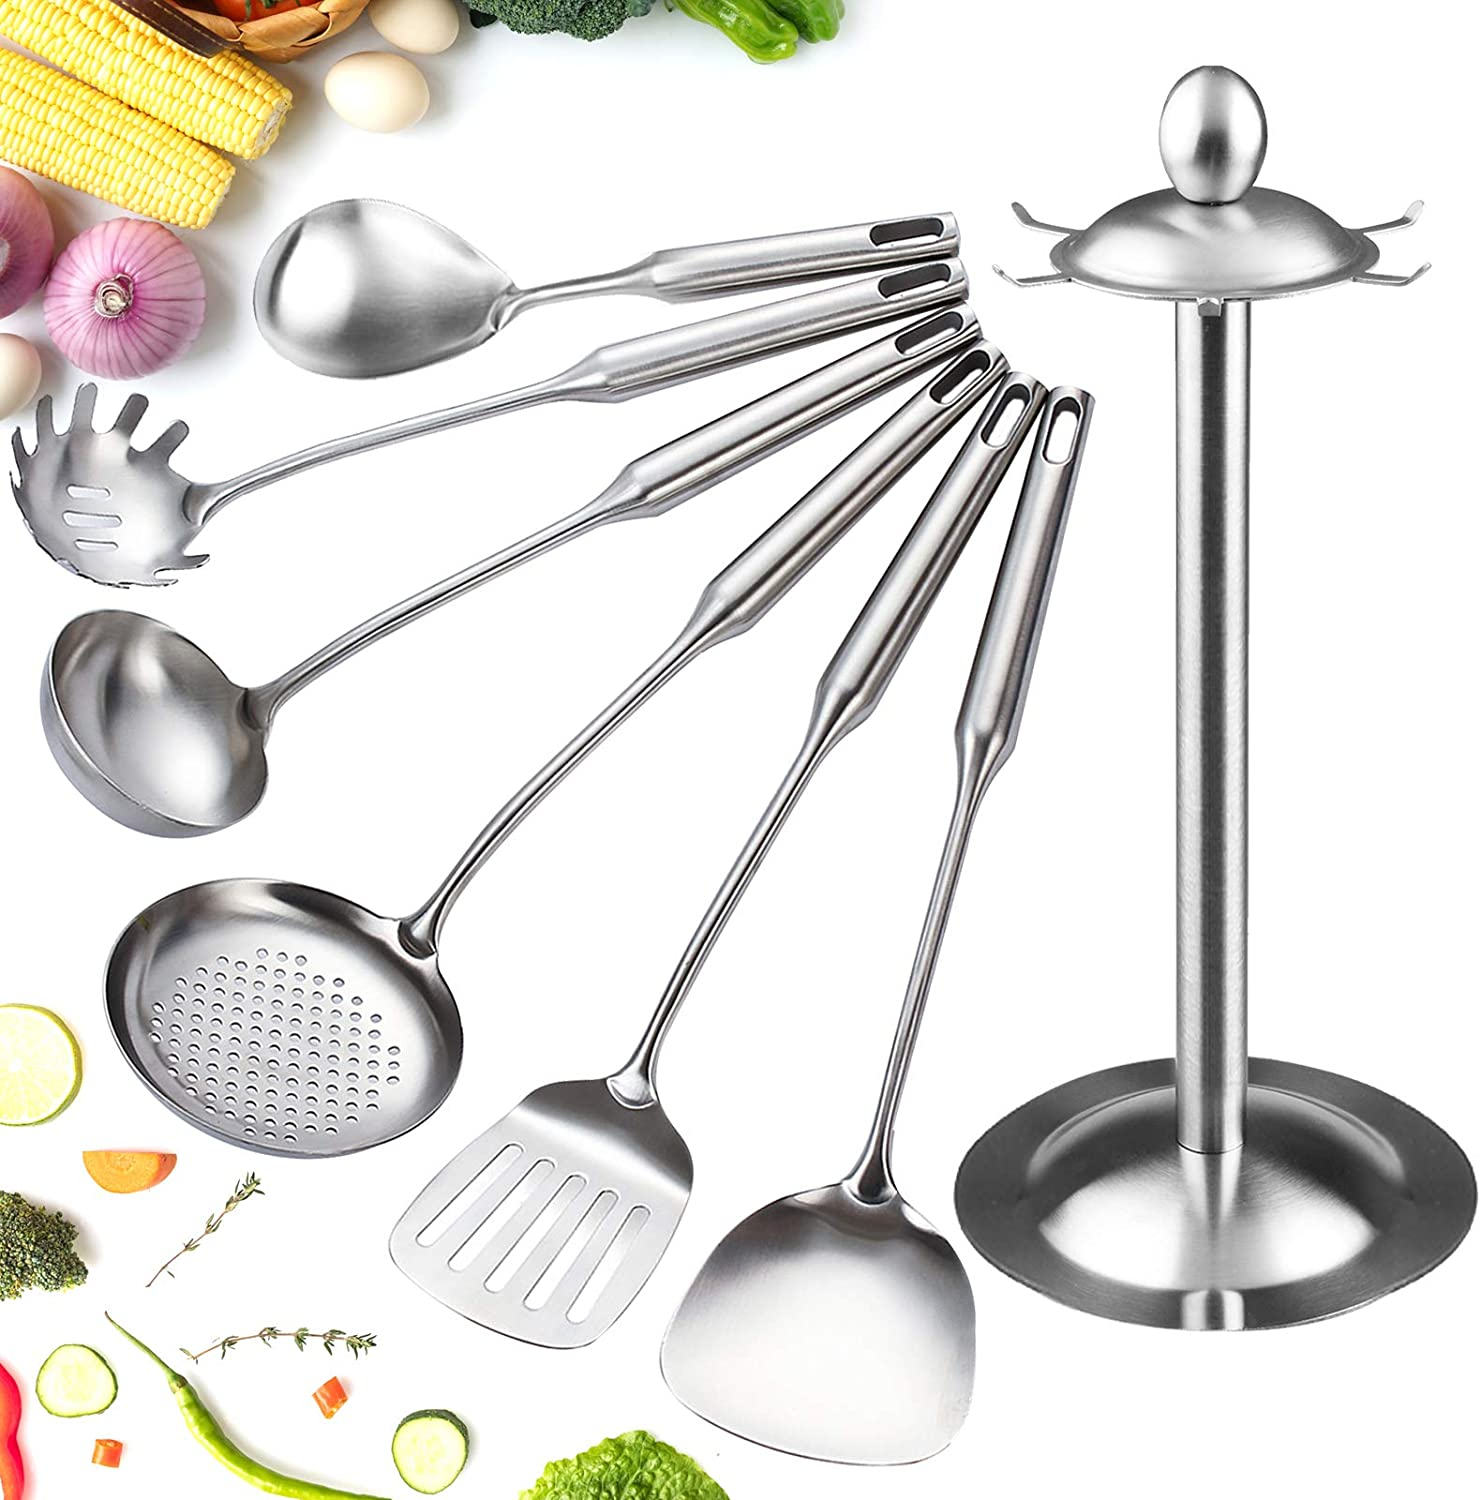 OFFicial shop 18 8 Stainless Steel Max 71% OFF Kitchen Utensil 7 PCS Utensils Set Cooking